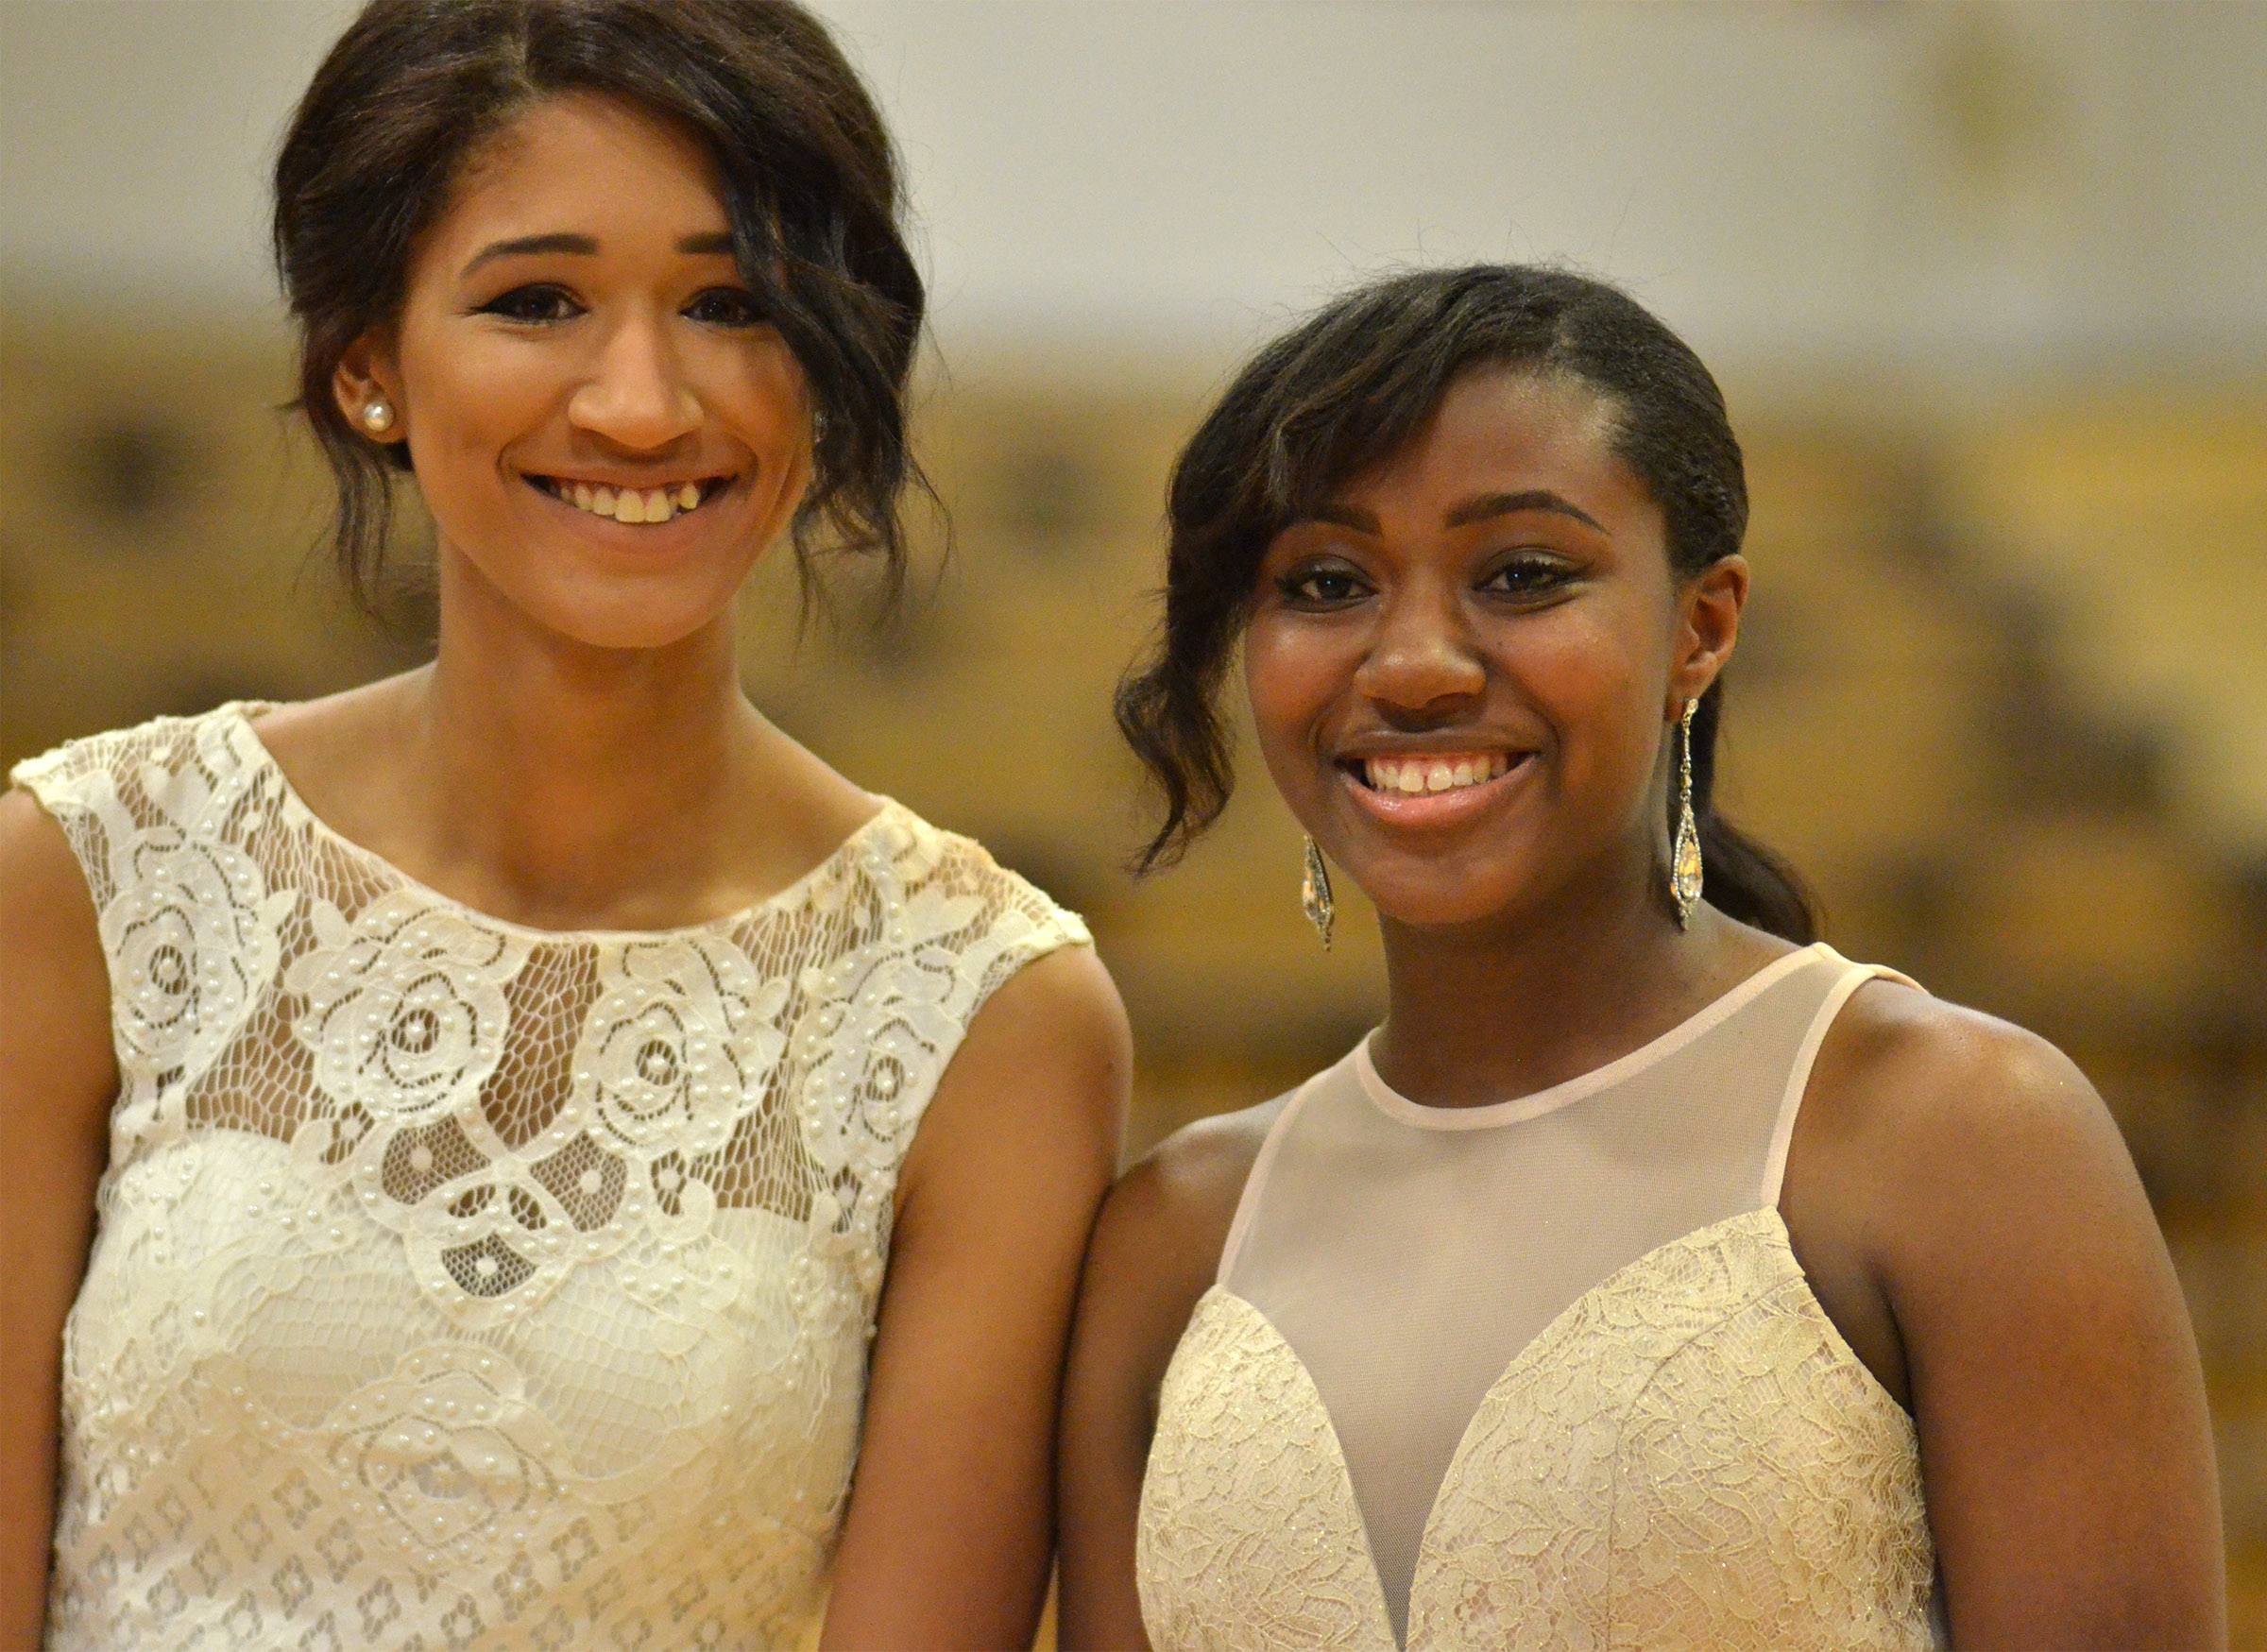 Lexi Shears, at left, and Latavia Shively smile as they walk into the gym.